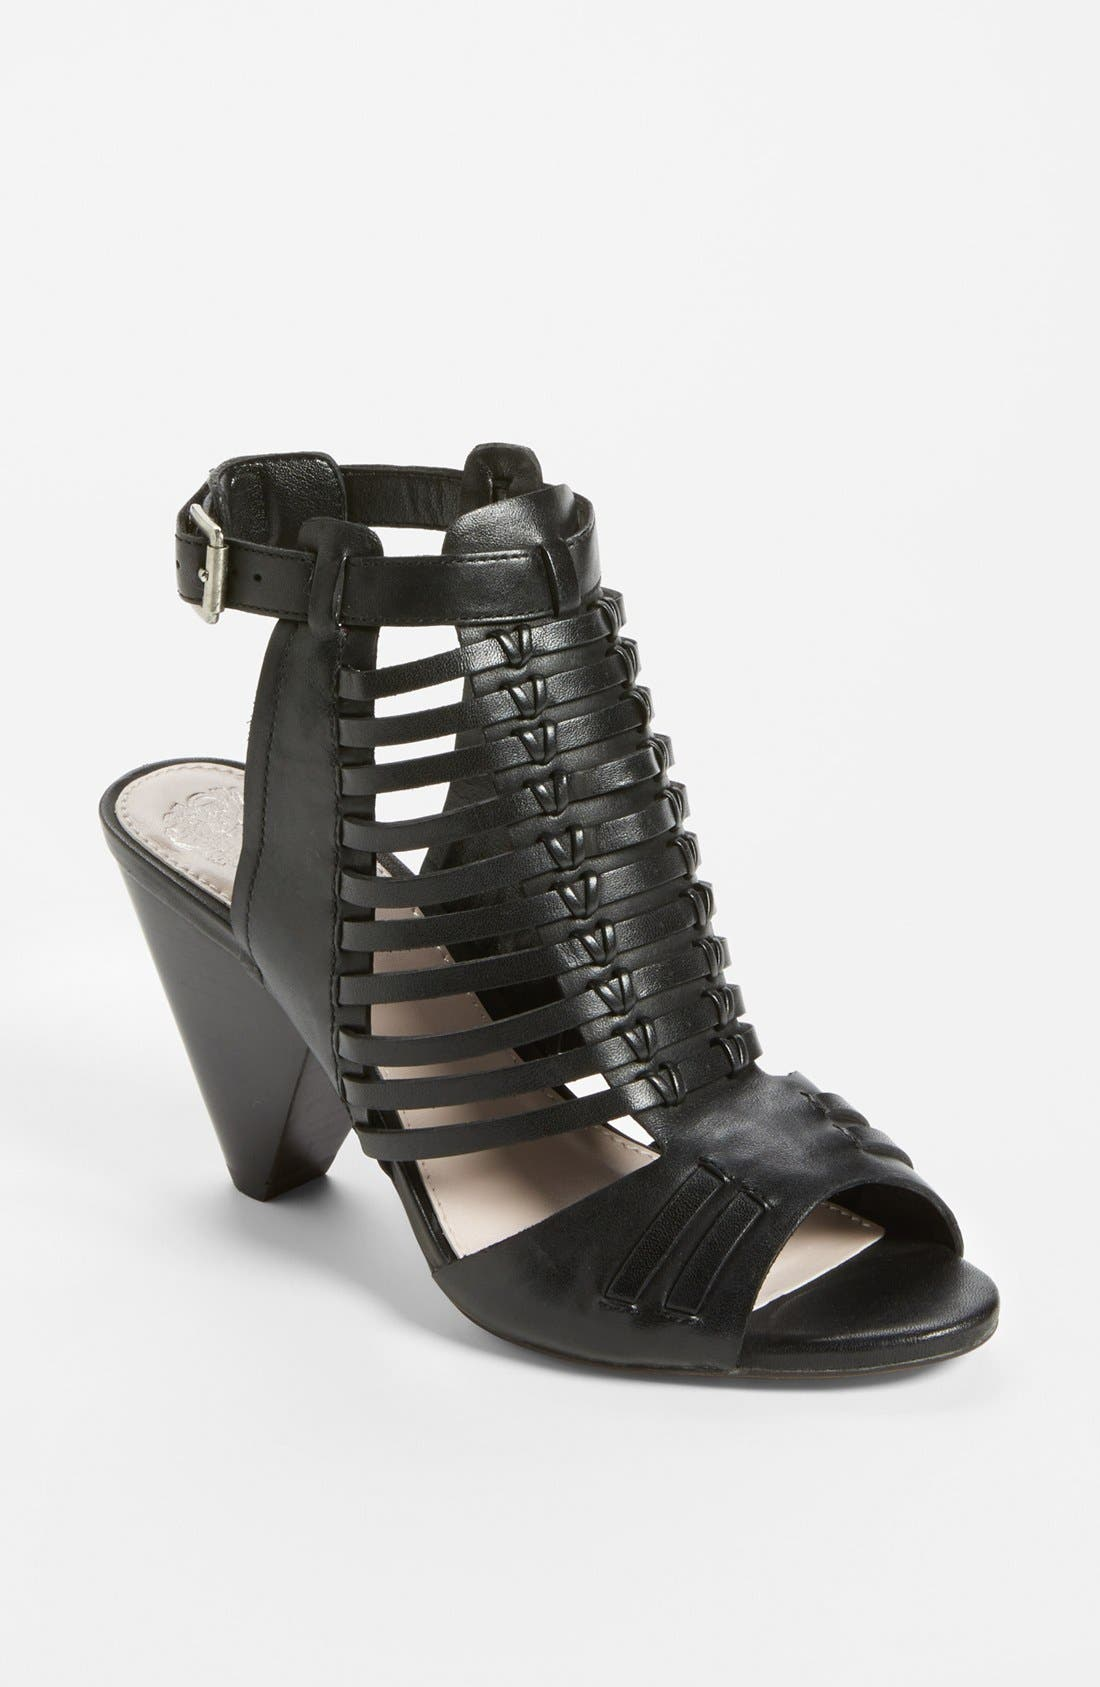 Alternate Image 1 Selected - Vince Camuto 'Effel' Sandal (Nordstrom Exclusive)